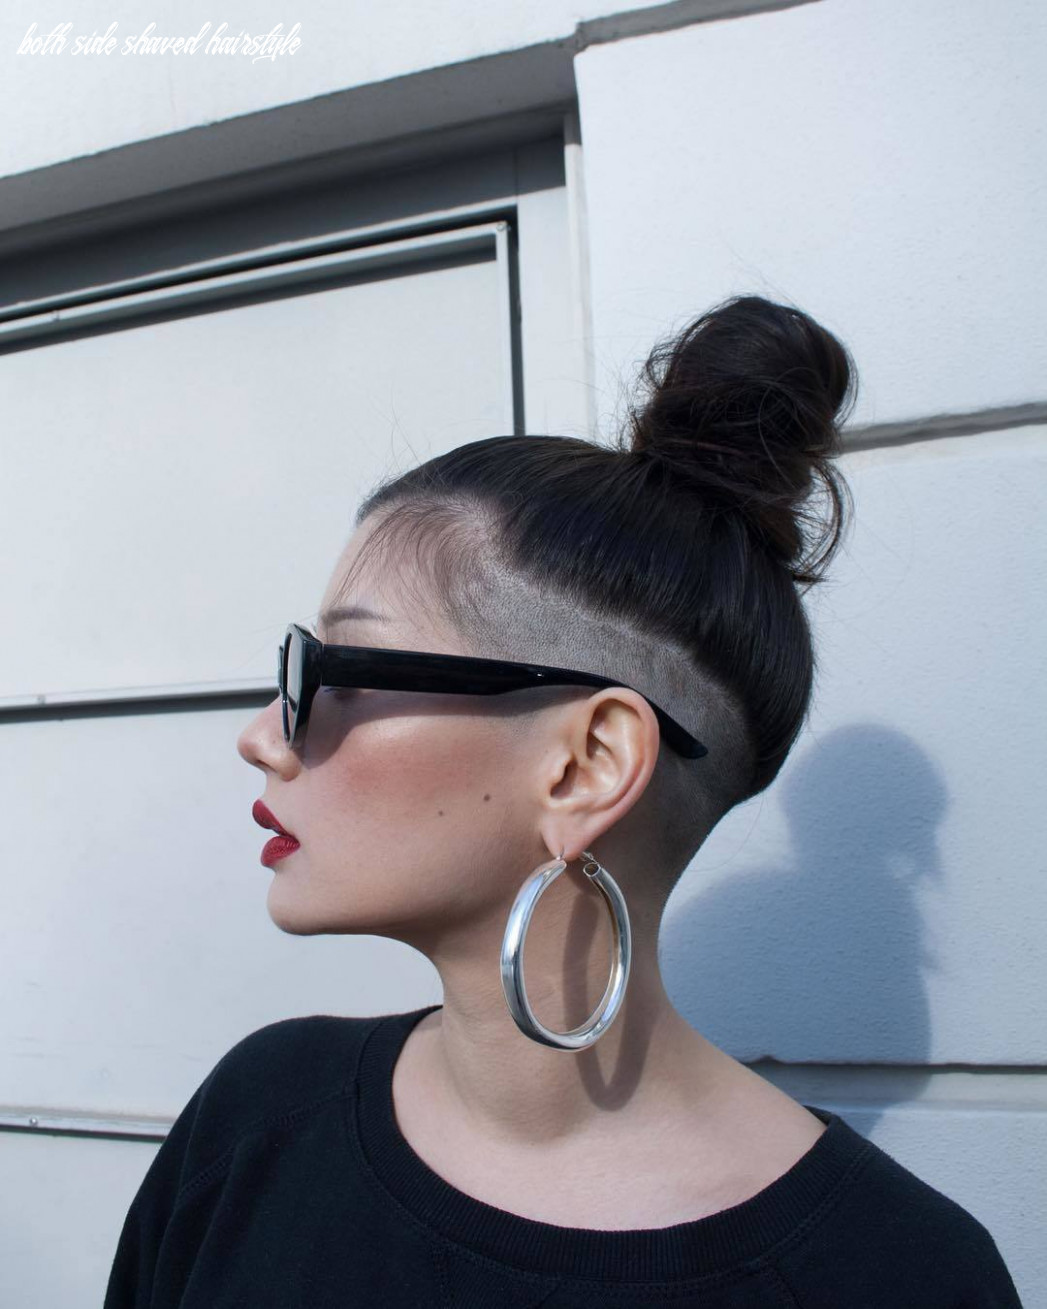 8 bold shaved hairstyles for women   shaved hair designs both side shaved hairstyle